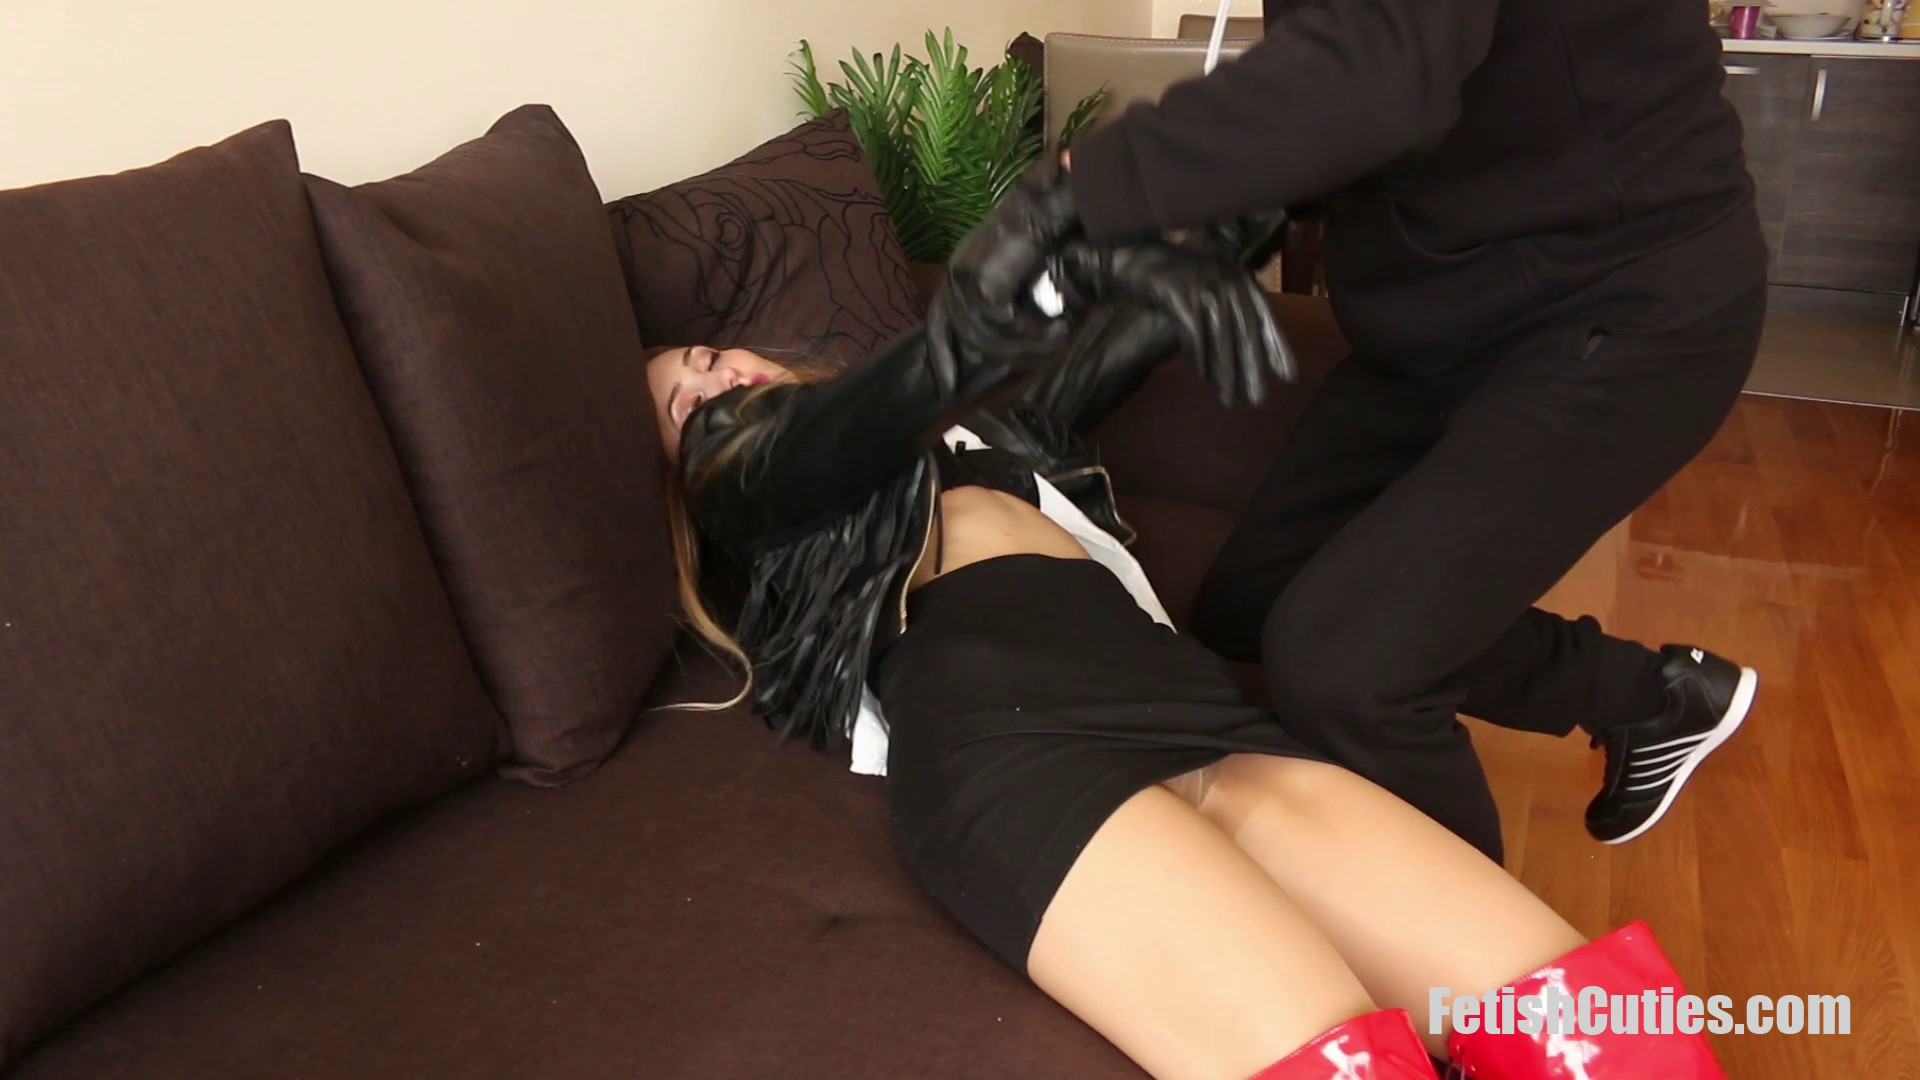 FETISH CUTIES Unsuspectedly Caught, Neck Chopped And Used For Pleasure (32)